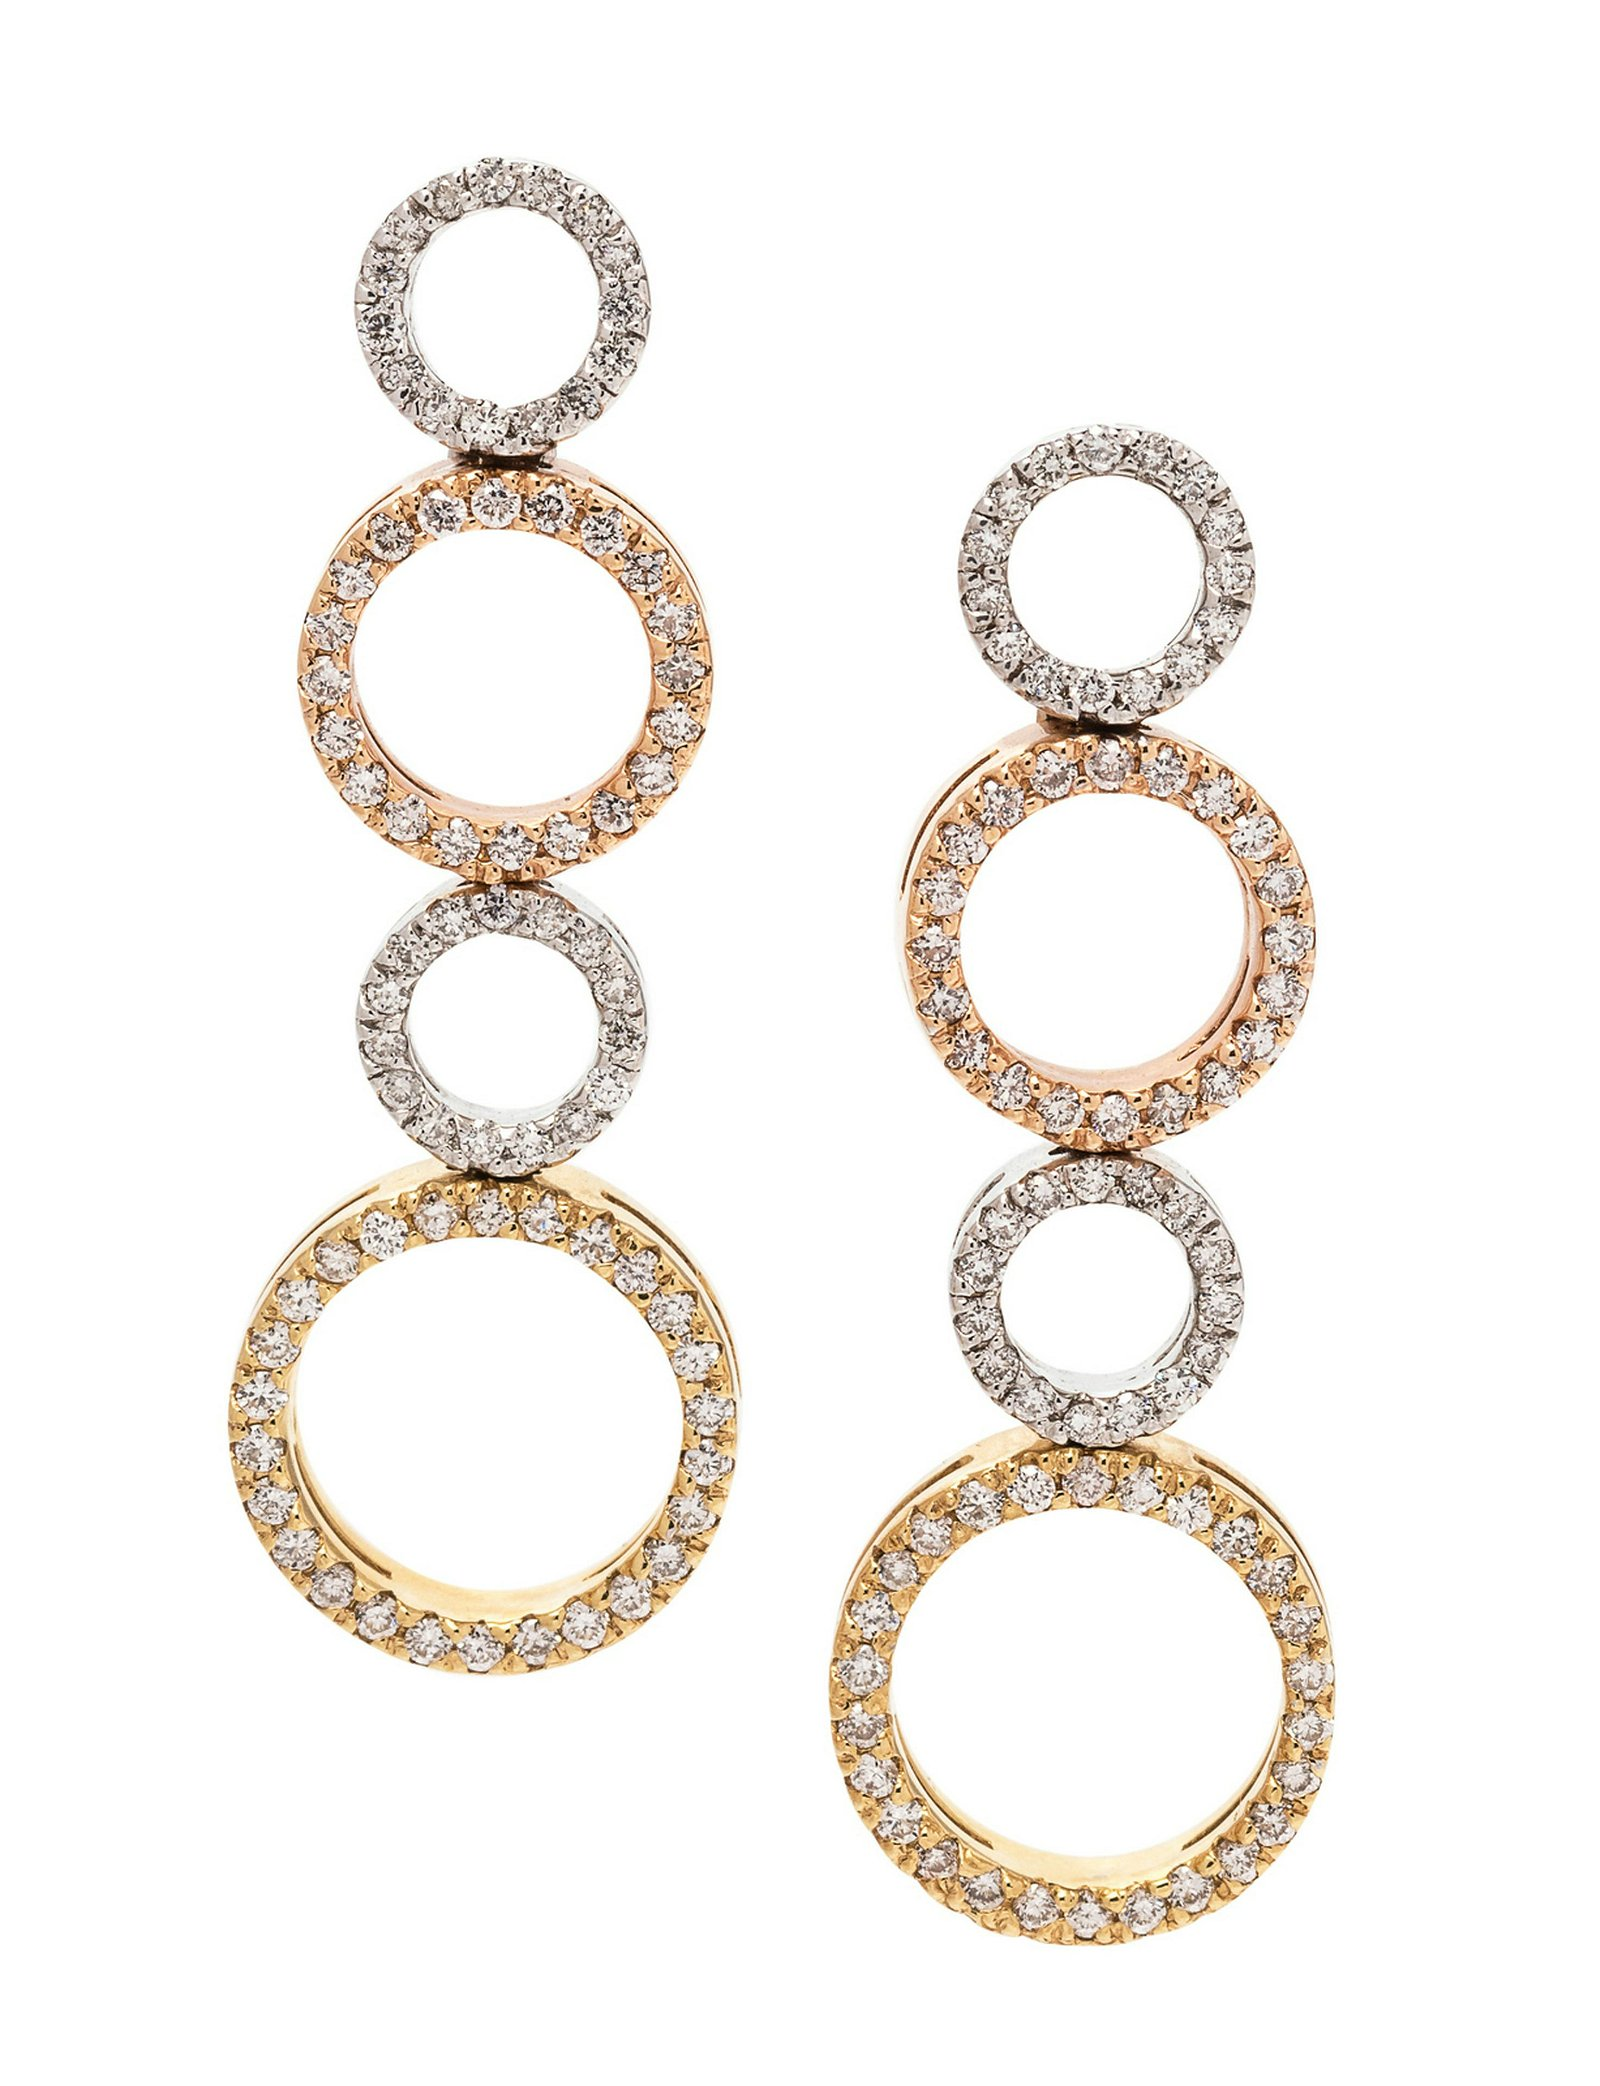 A Pair of 18 Karat Tricolor Gold 'Circle of Life'